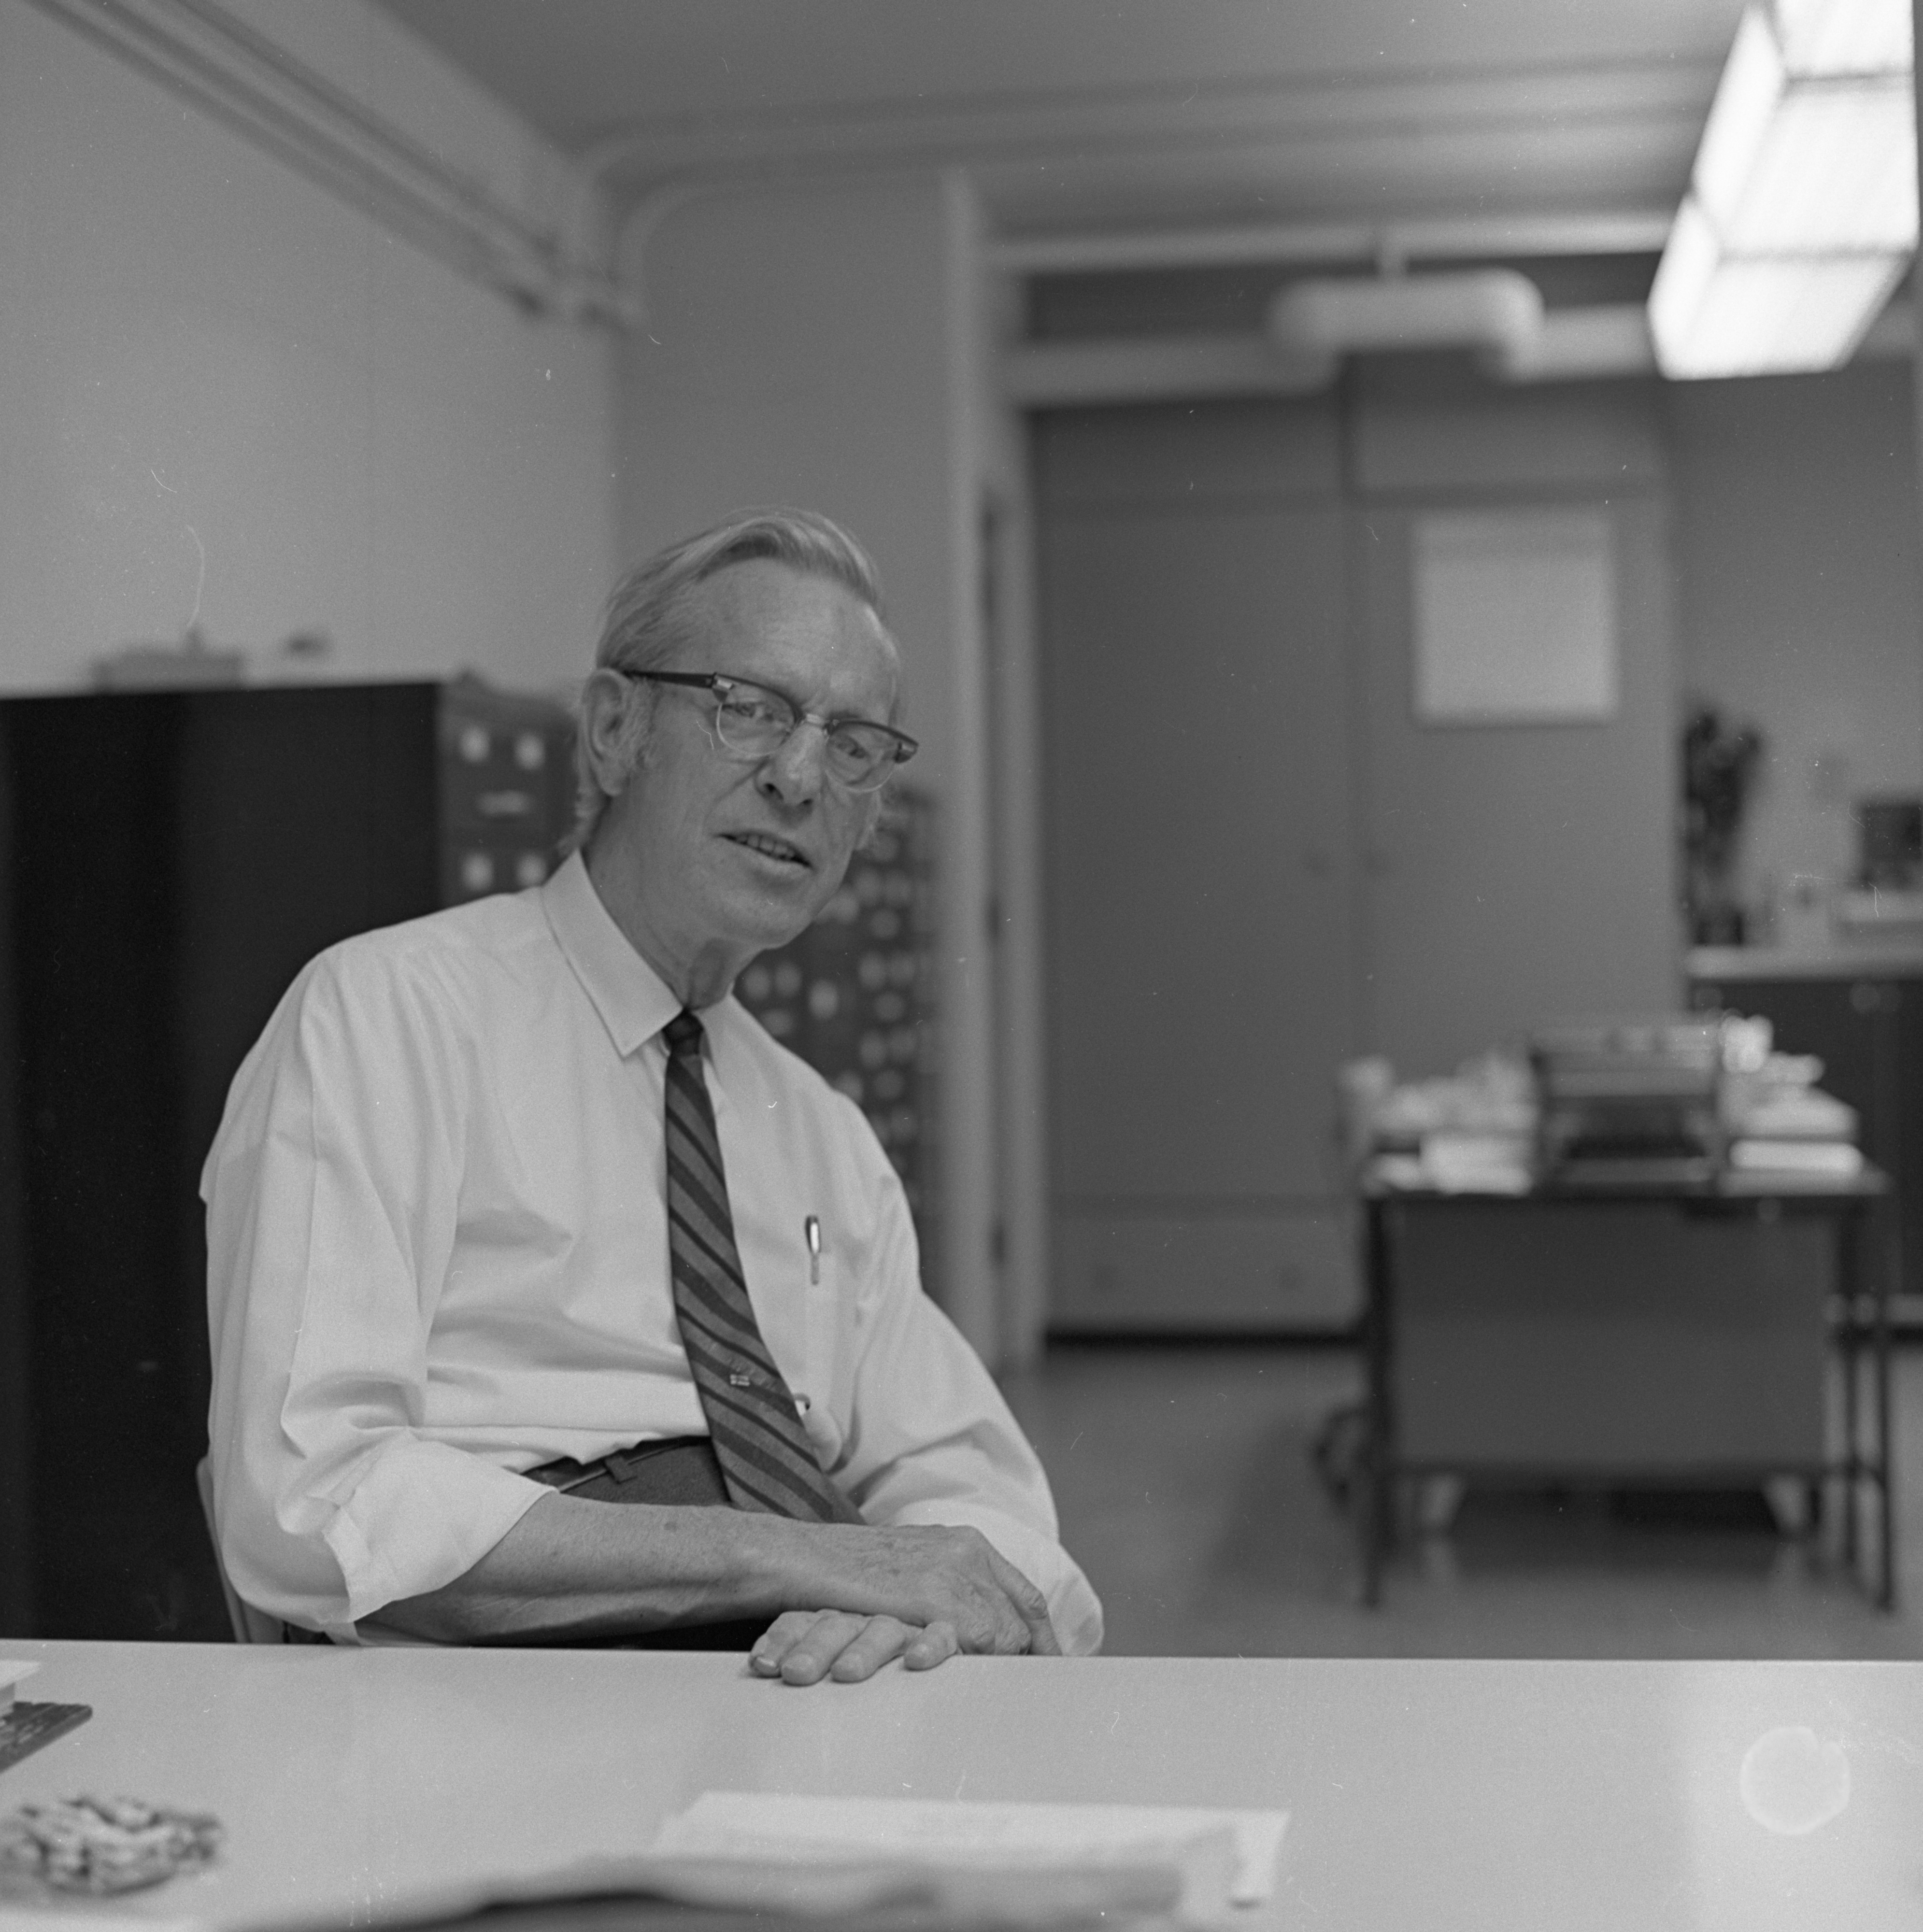 Ann Arbor News Photographer Eck Stanger In His Office, July 1969 image